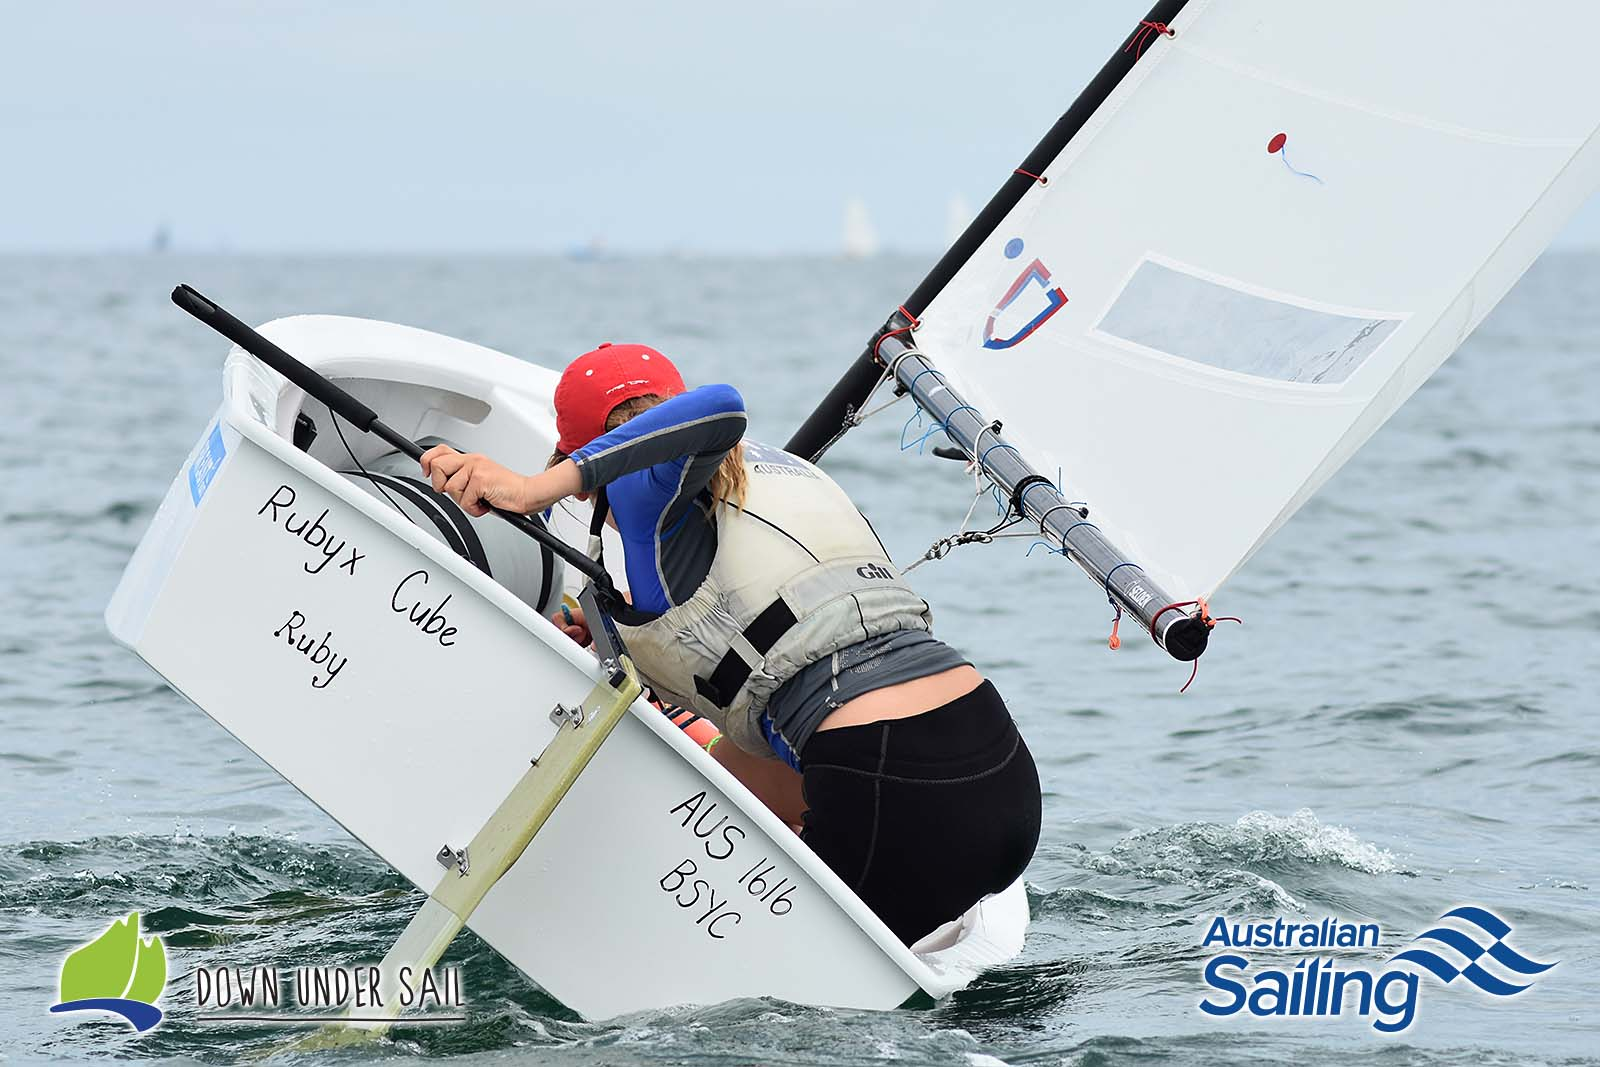 Racing in the Optimist Open fleet was close and competitive all weekend.